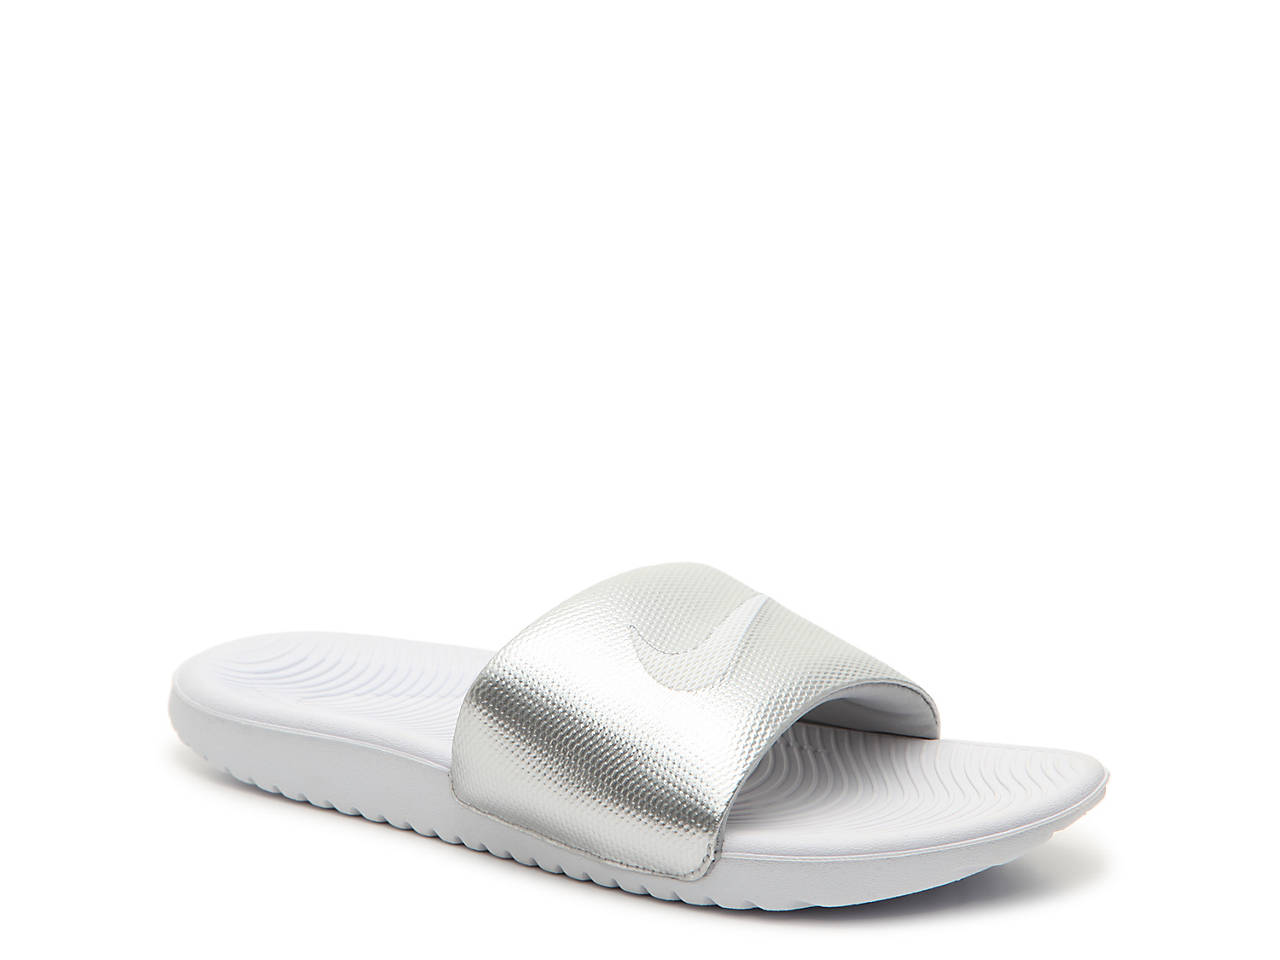 reputable site e8800 b304b Kawa Slide Sandal - Women's